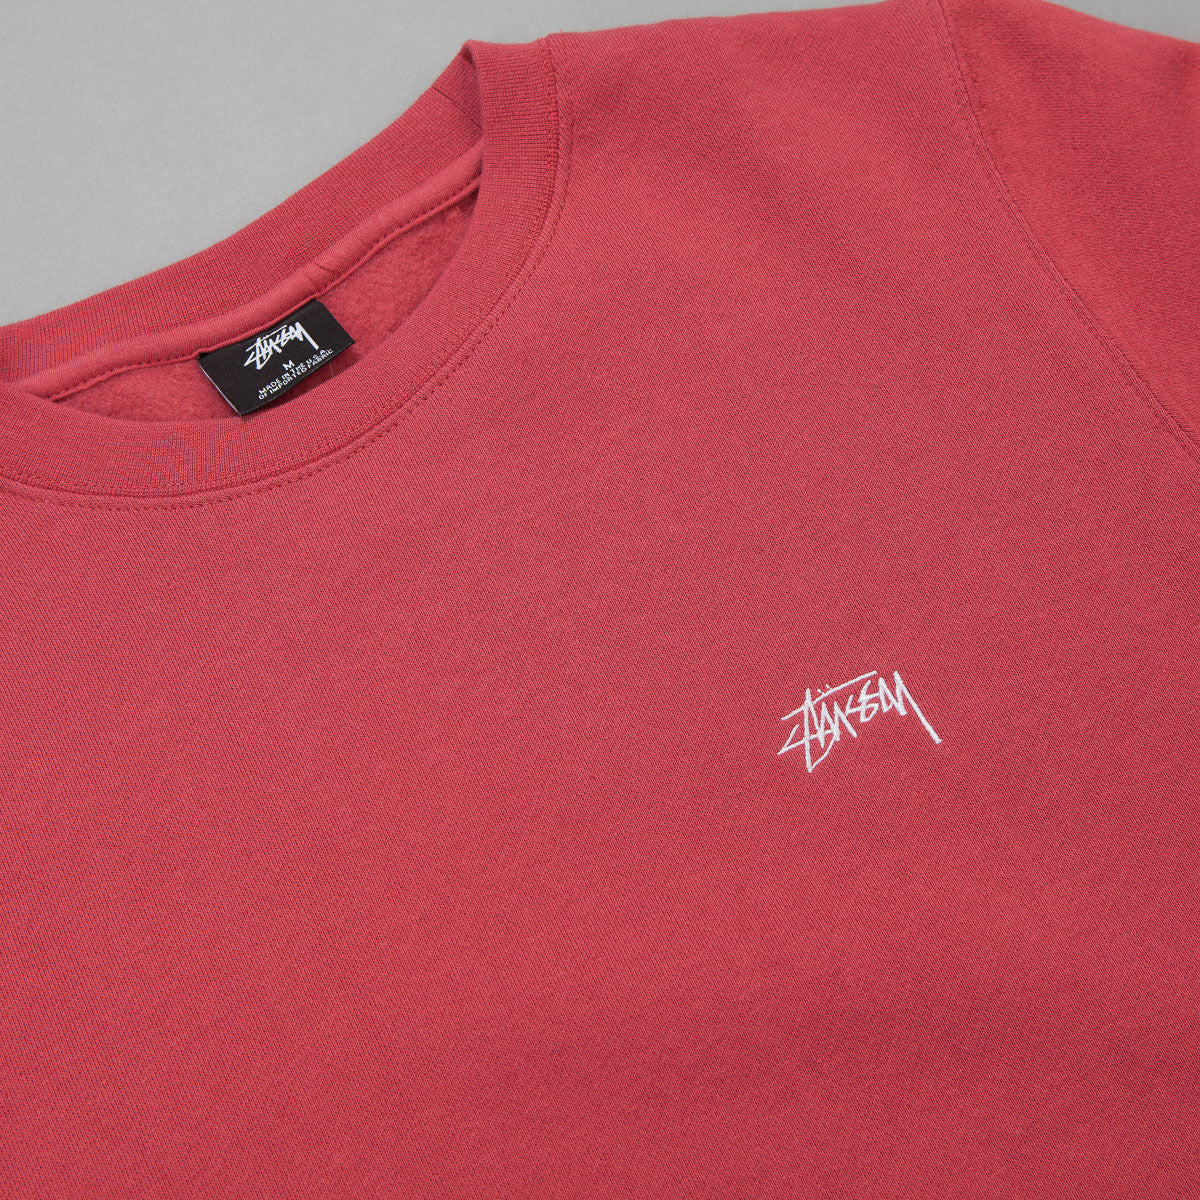 Stussy Back Arc Crewneck Sweatshirt - Salmon